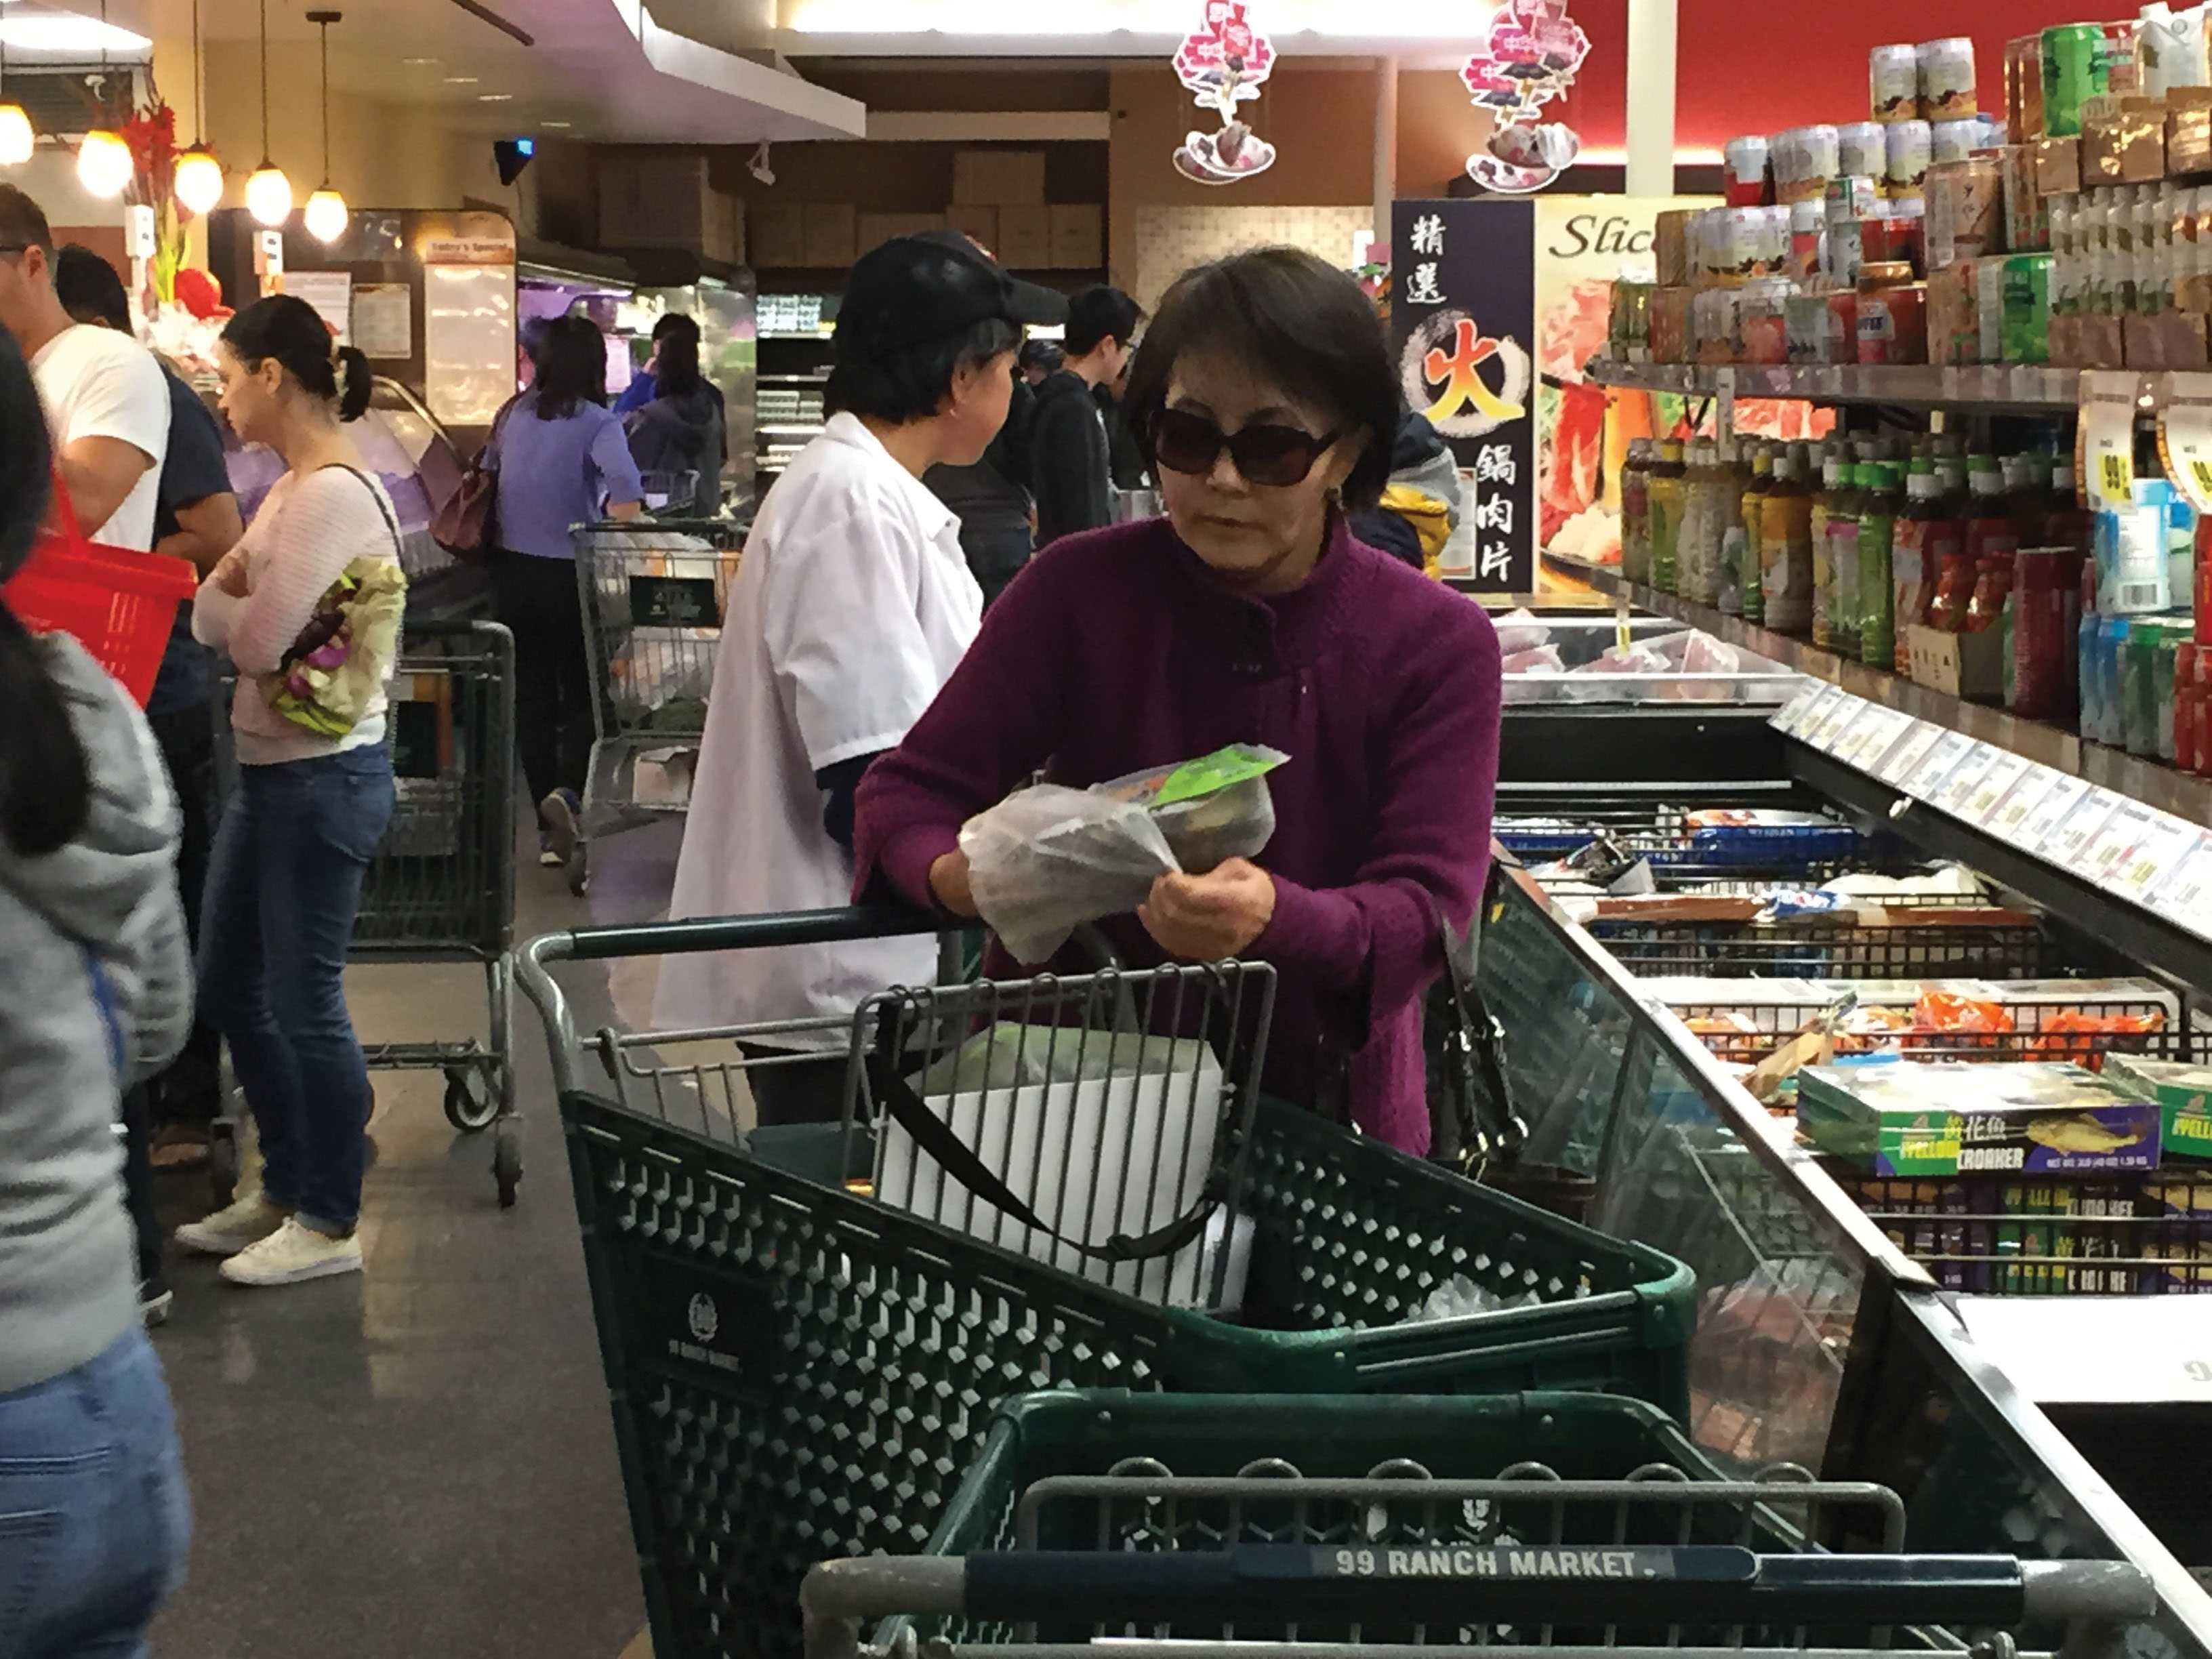 After carefully examining the meat selection, a shopper chooses rib eye.